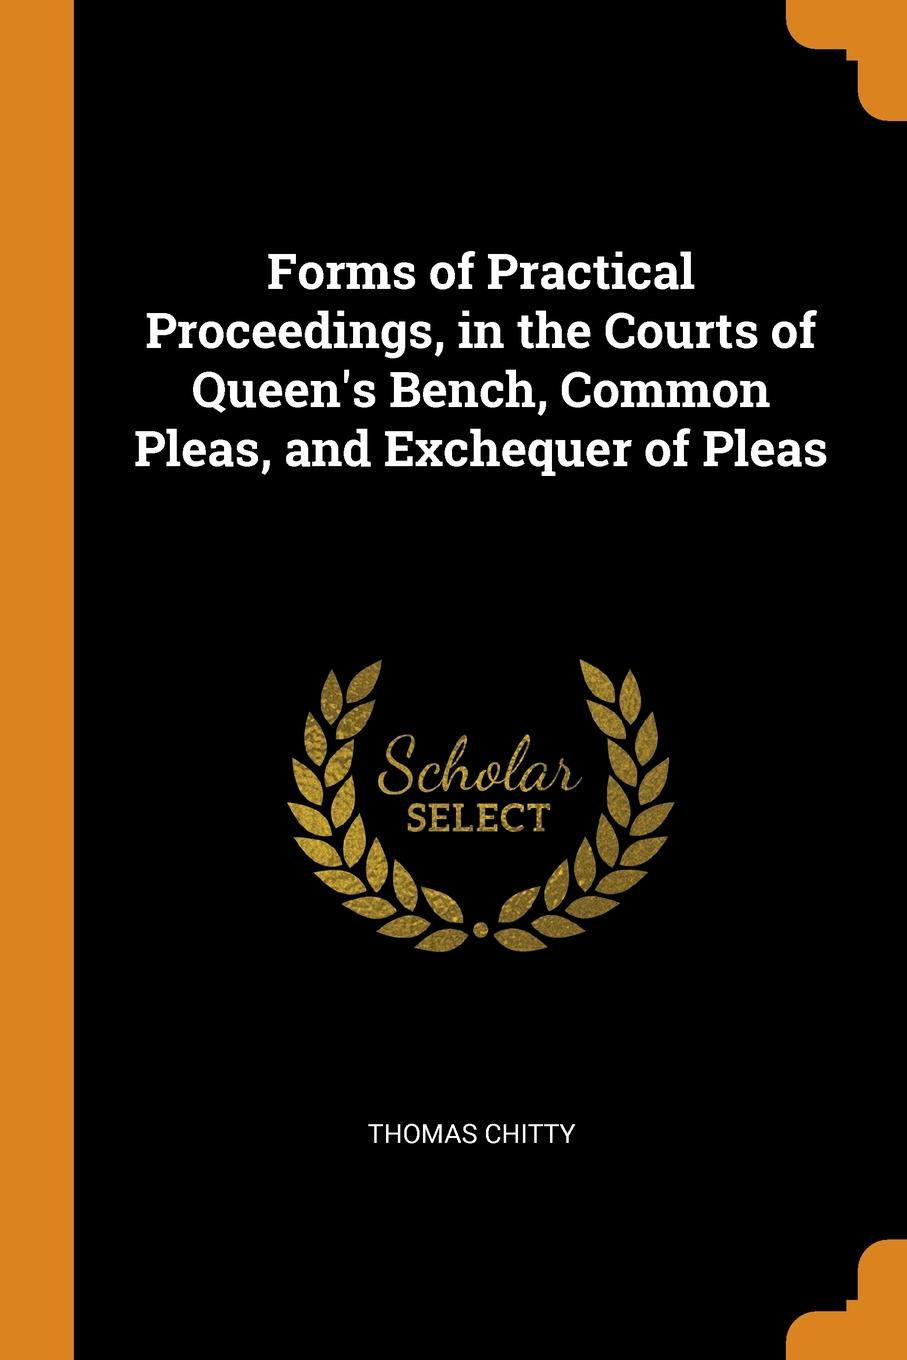 Forms of Practical Proceedings, in the Courts of Queen.s Bench, Common Pleas, and Exchequer of Pleas. Thomas Chitty